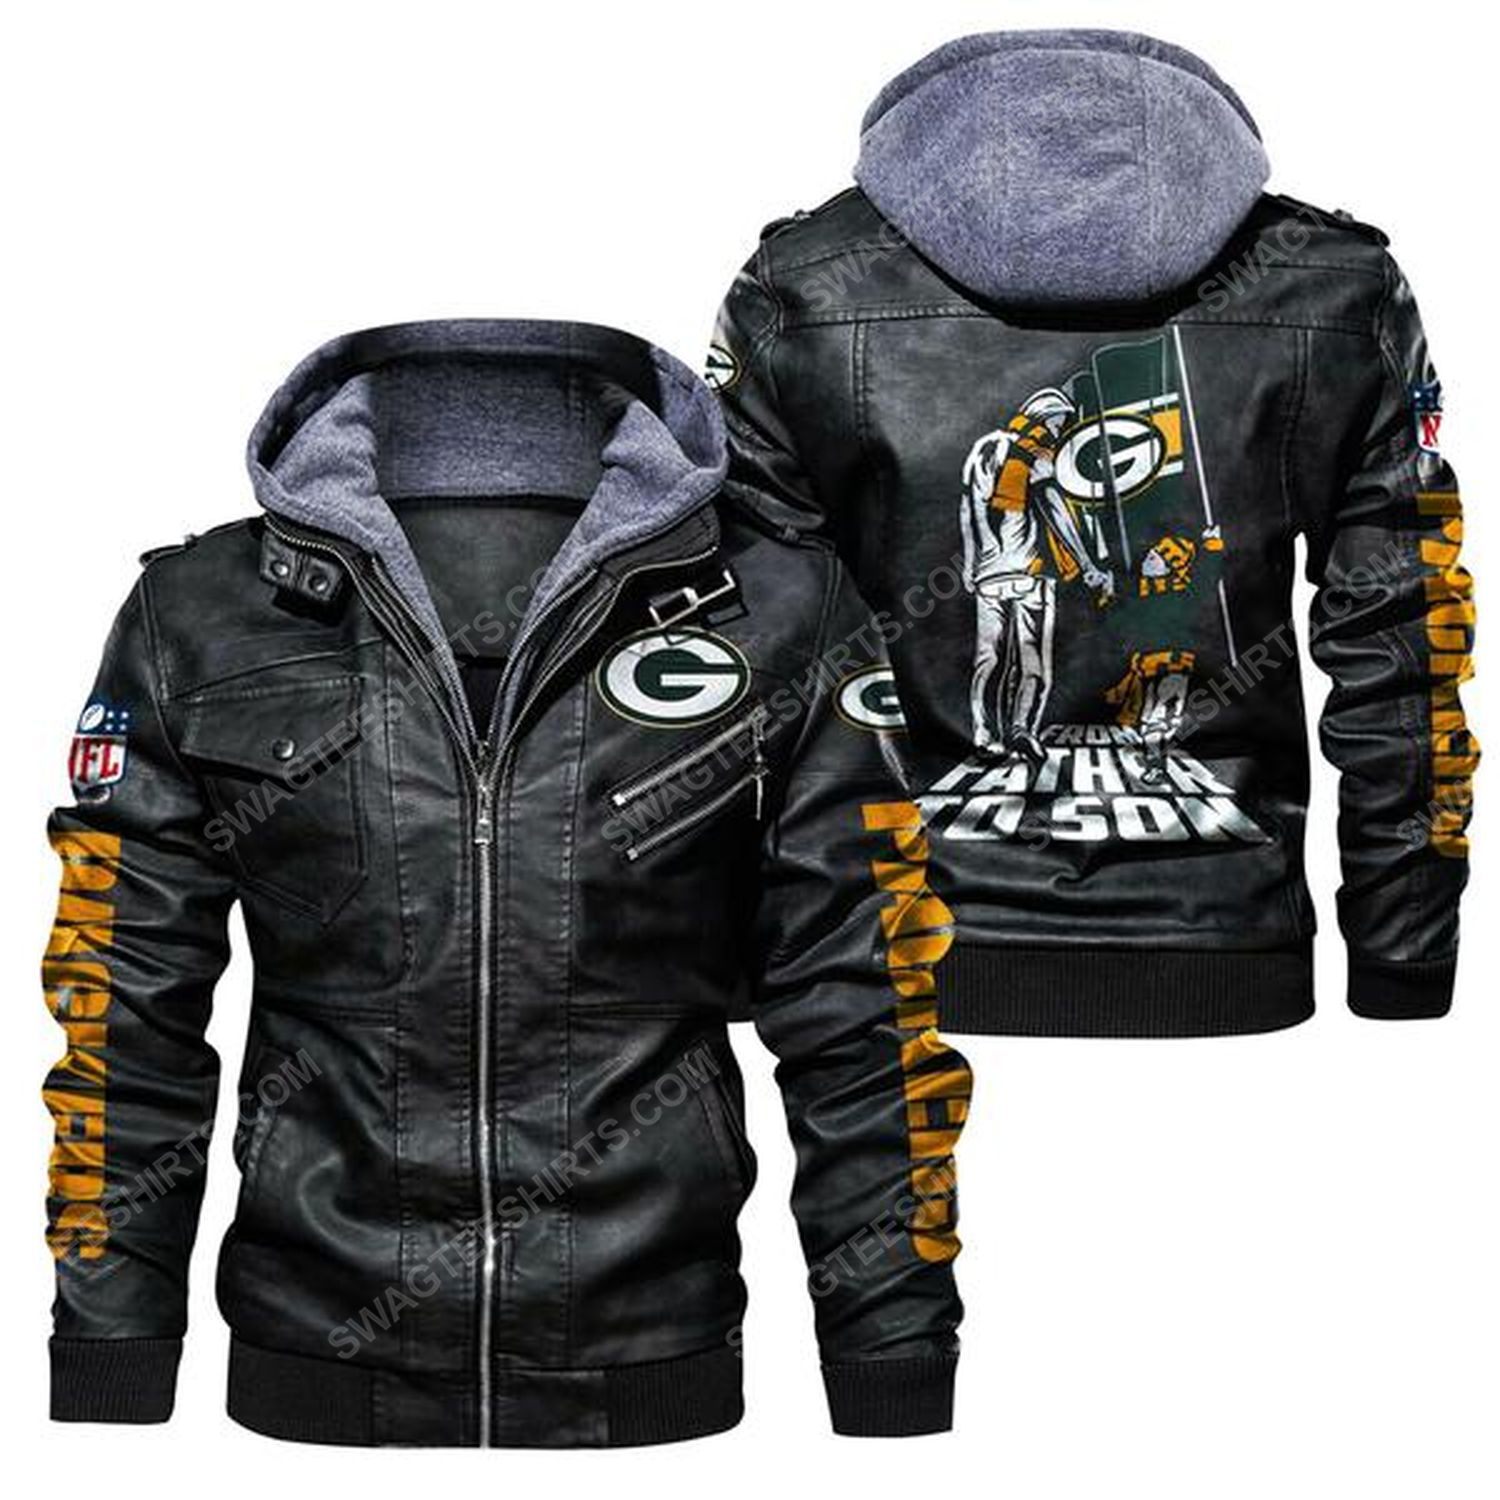 National football league green bay packers from father to son leather jacket - black